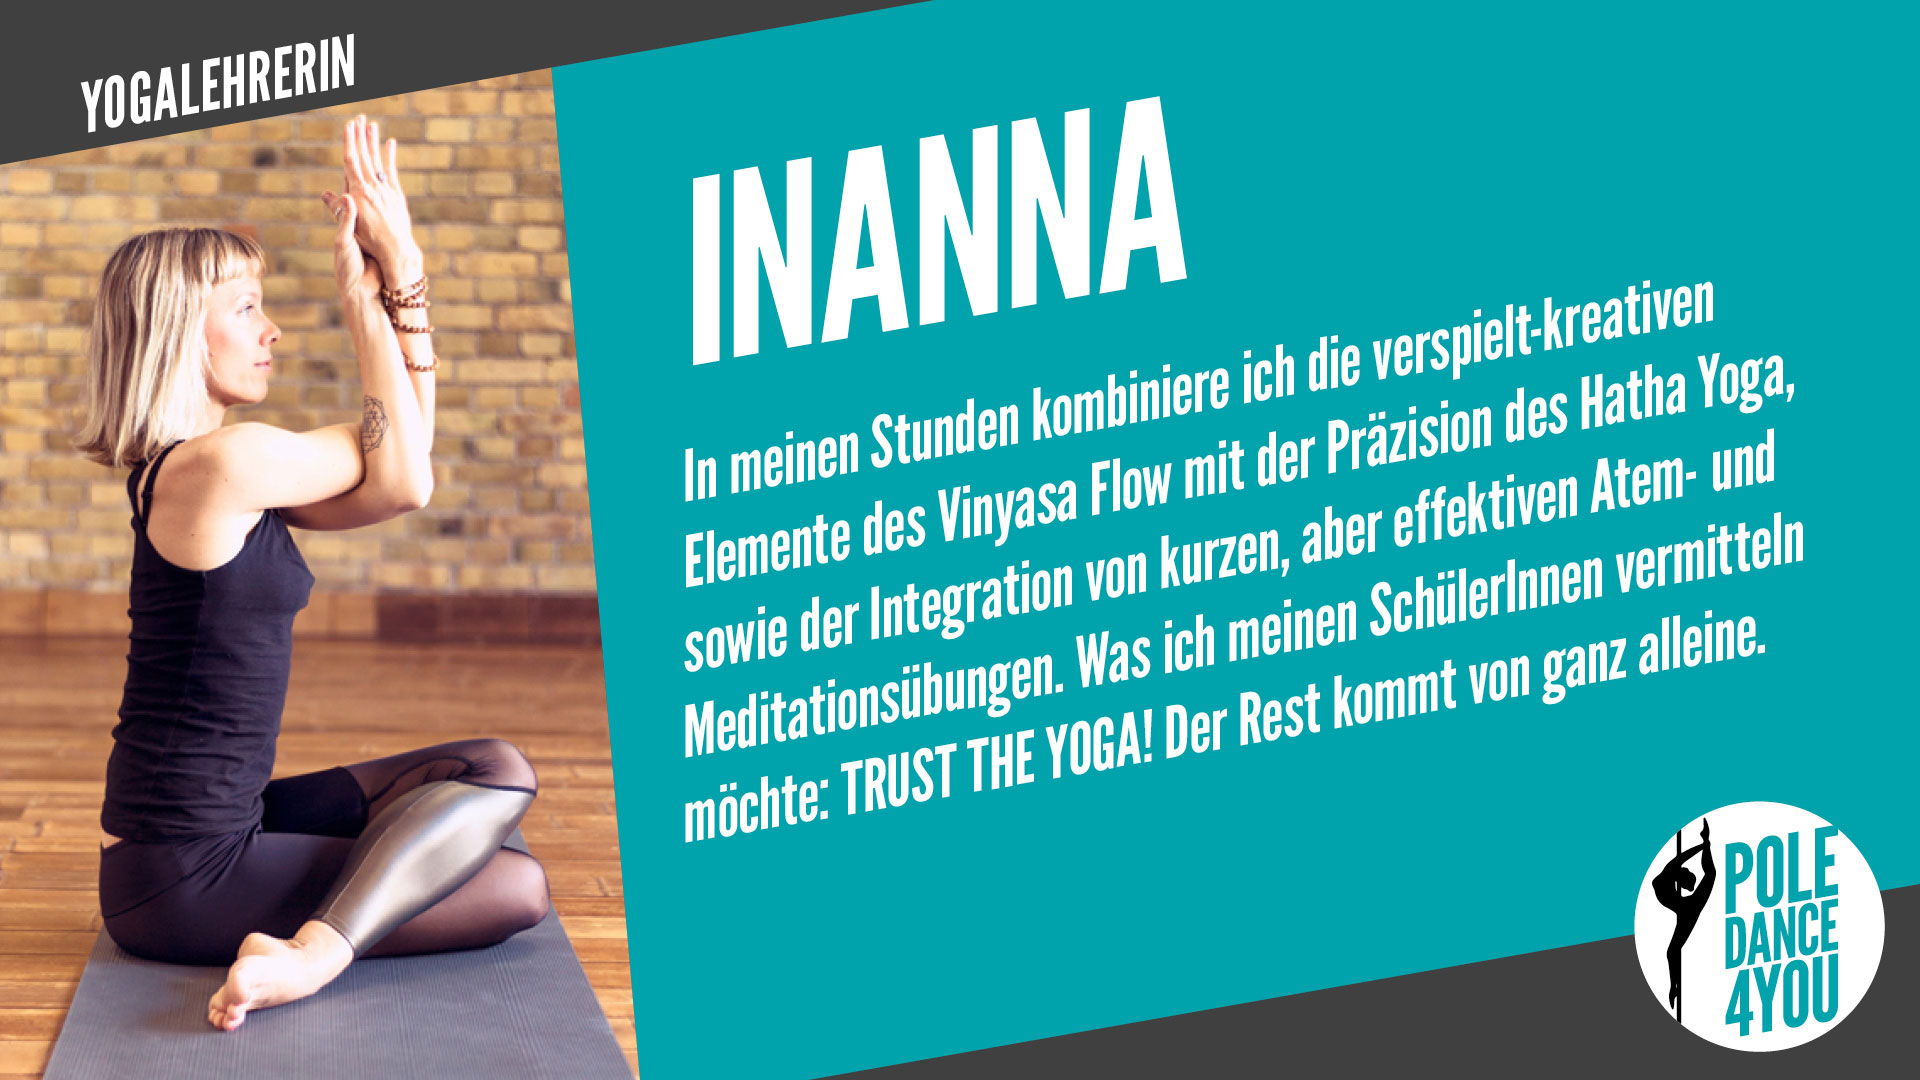 Yogalehrerin Inanna - www.poledance4you.de